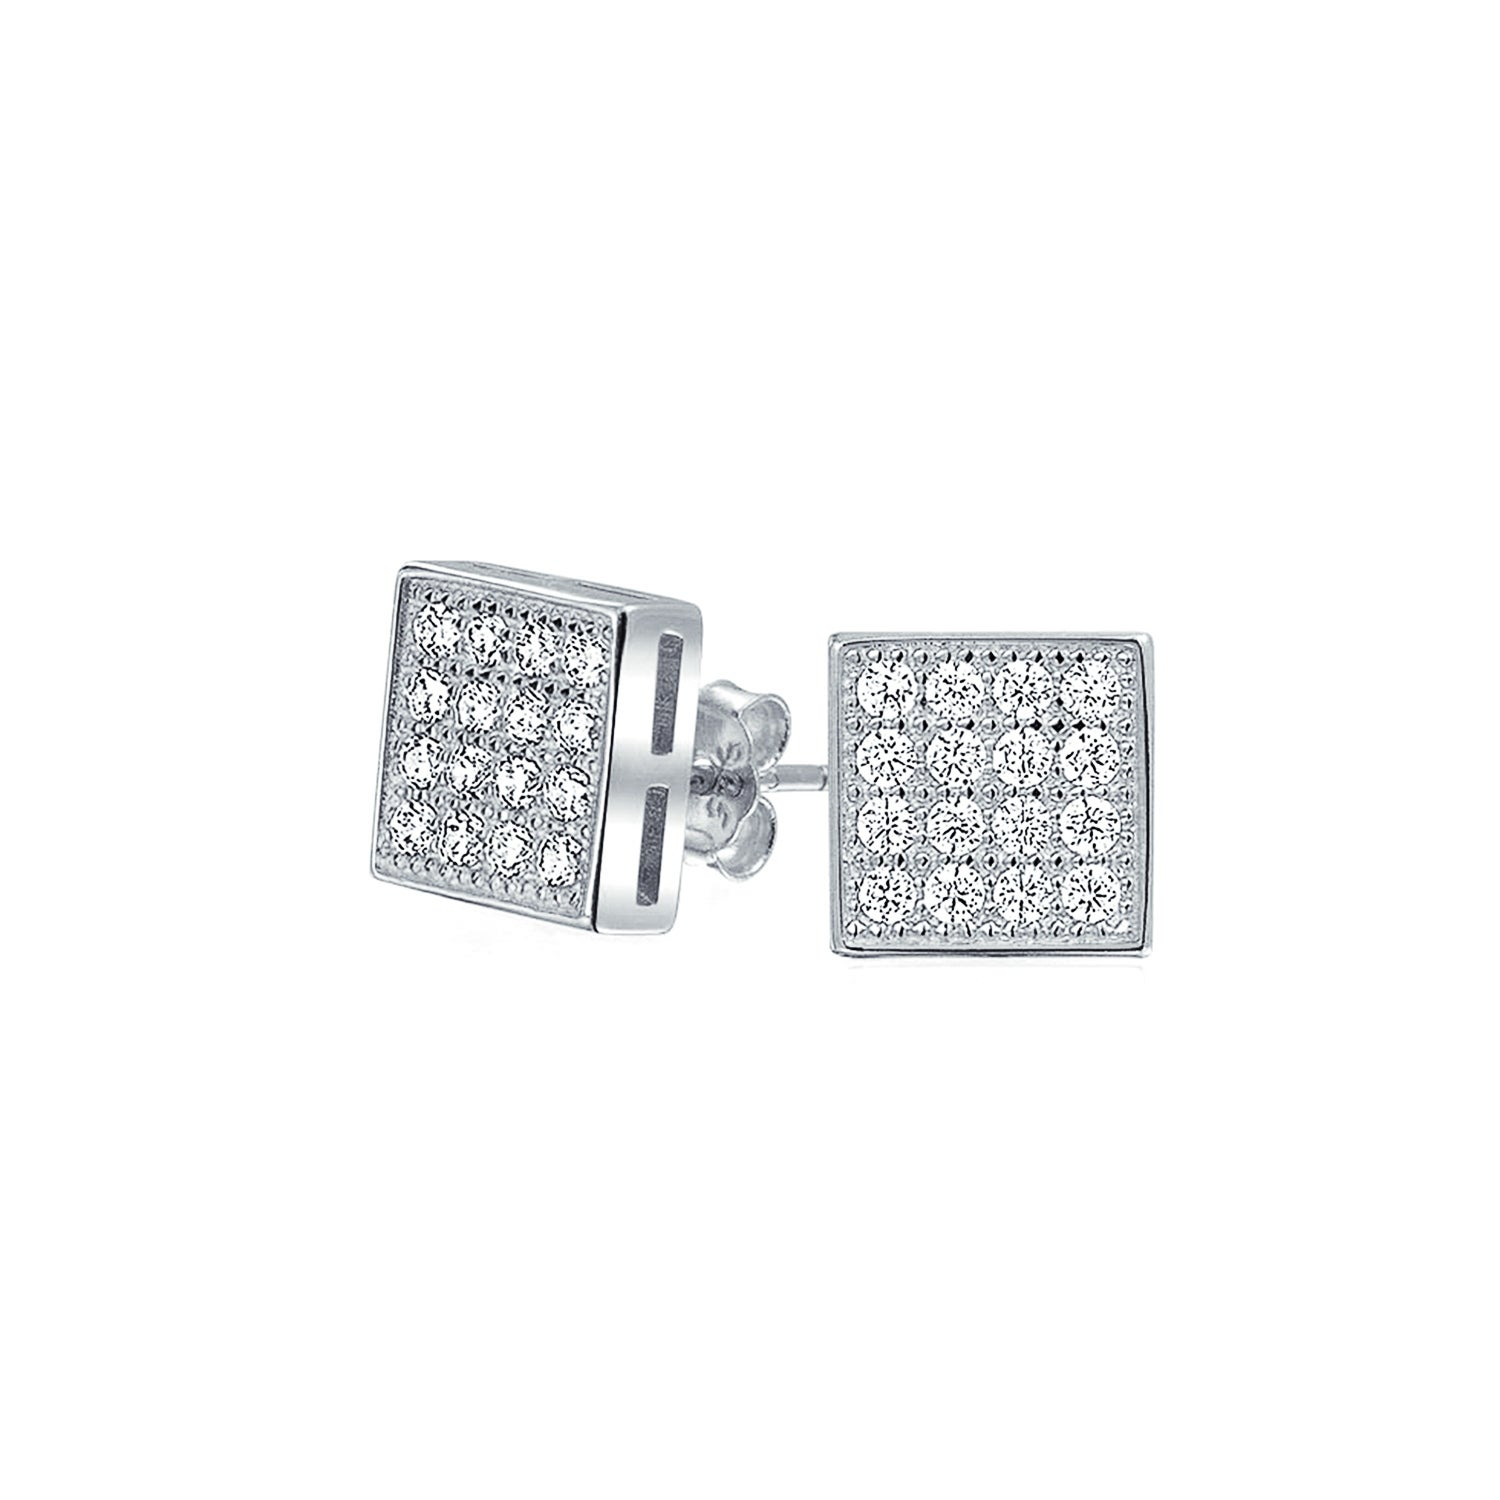 GIFT POUCH INCLUDED. SILVER CUFFLINKS SET WITH CLEAR CUBIC ZIRCONIAS